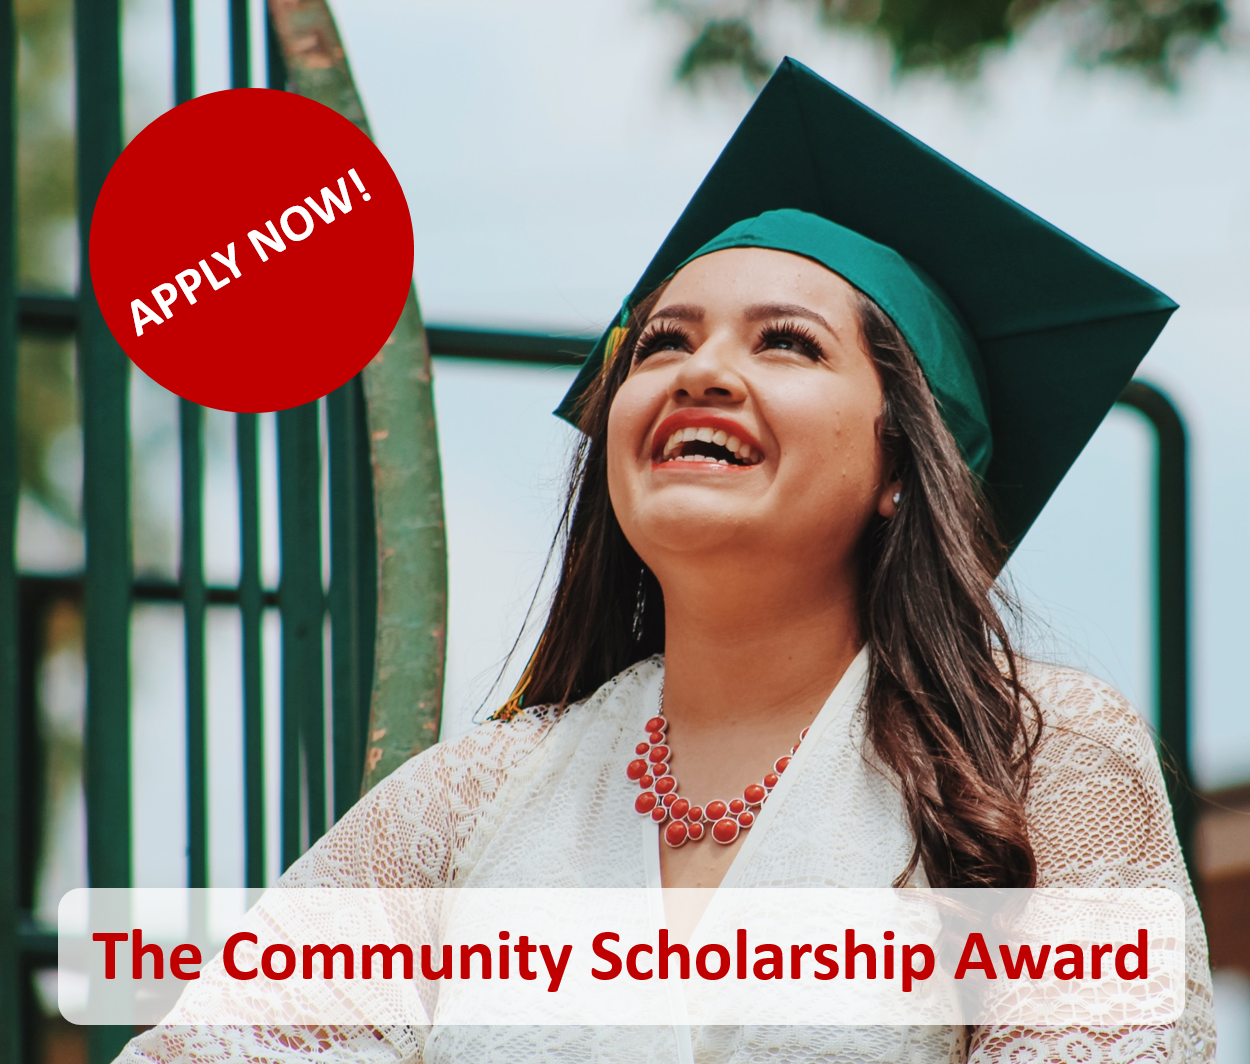 Community Scholarship Award